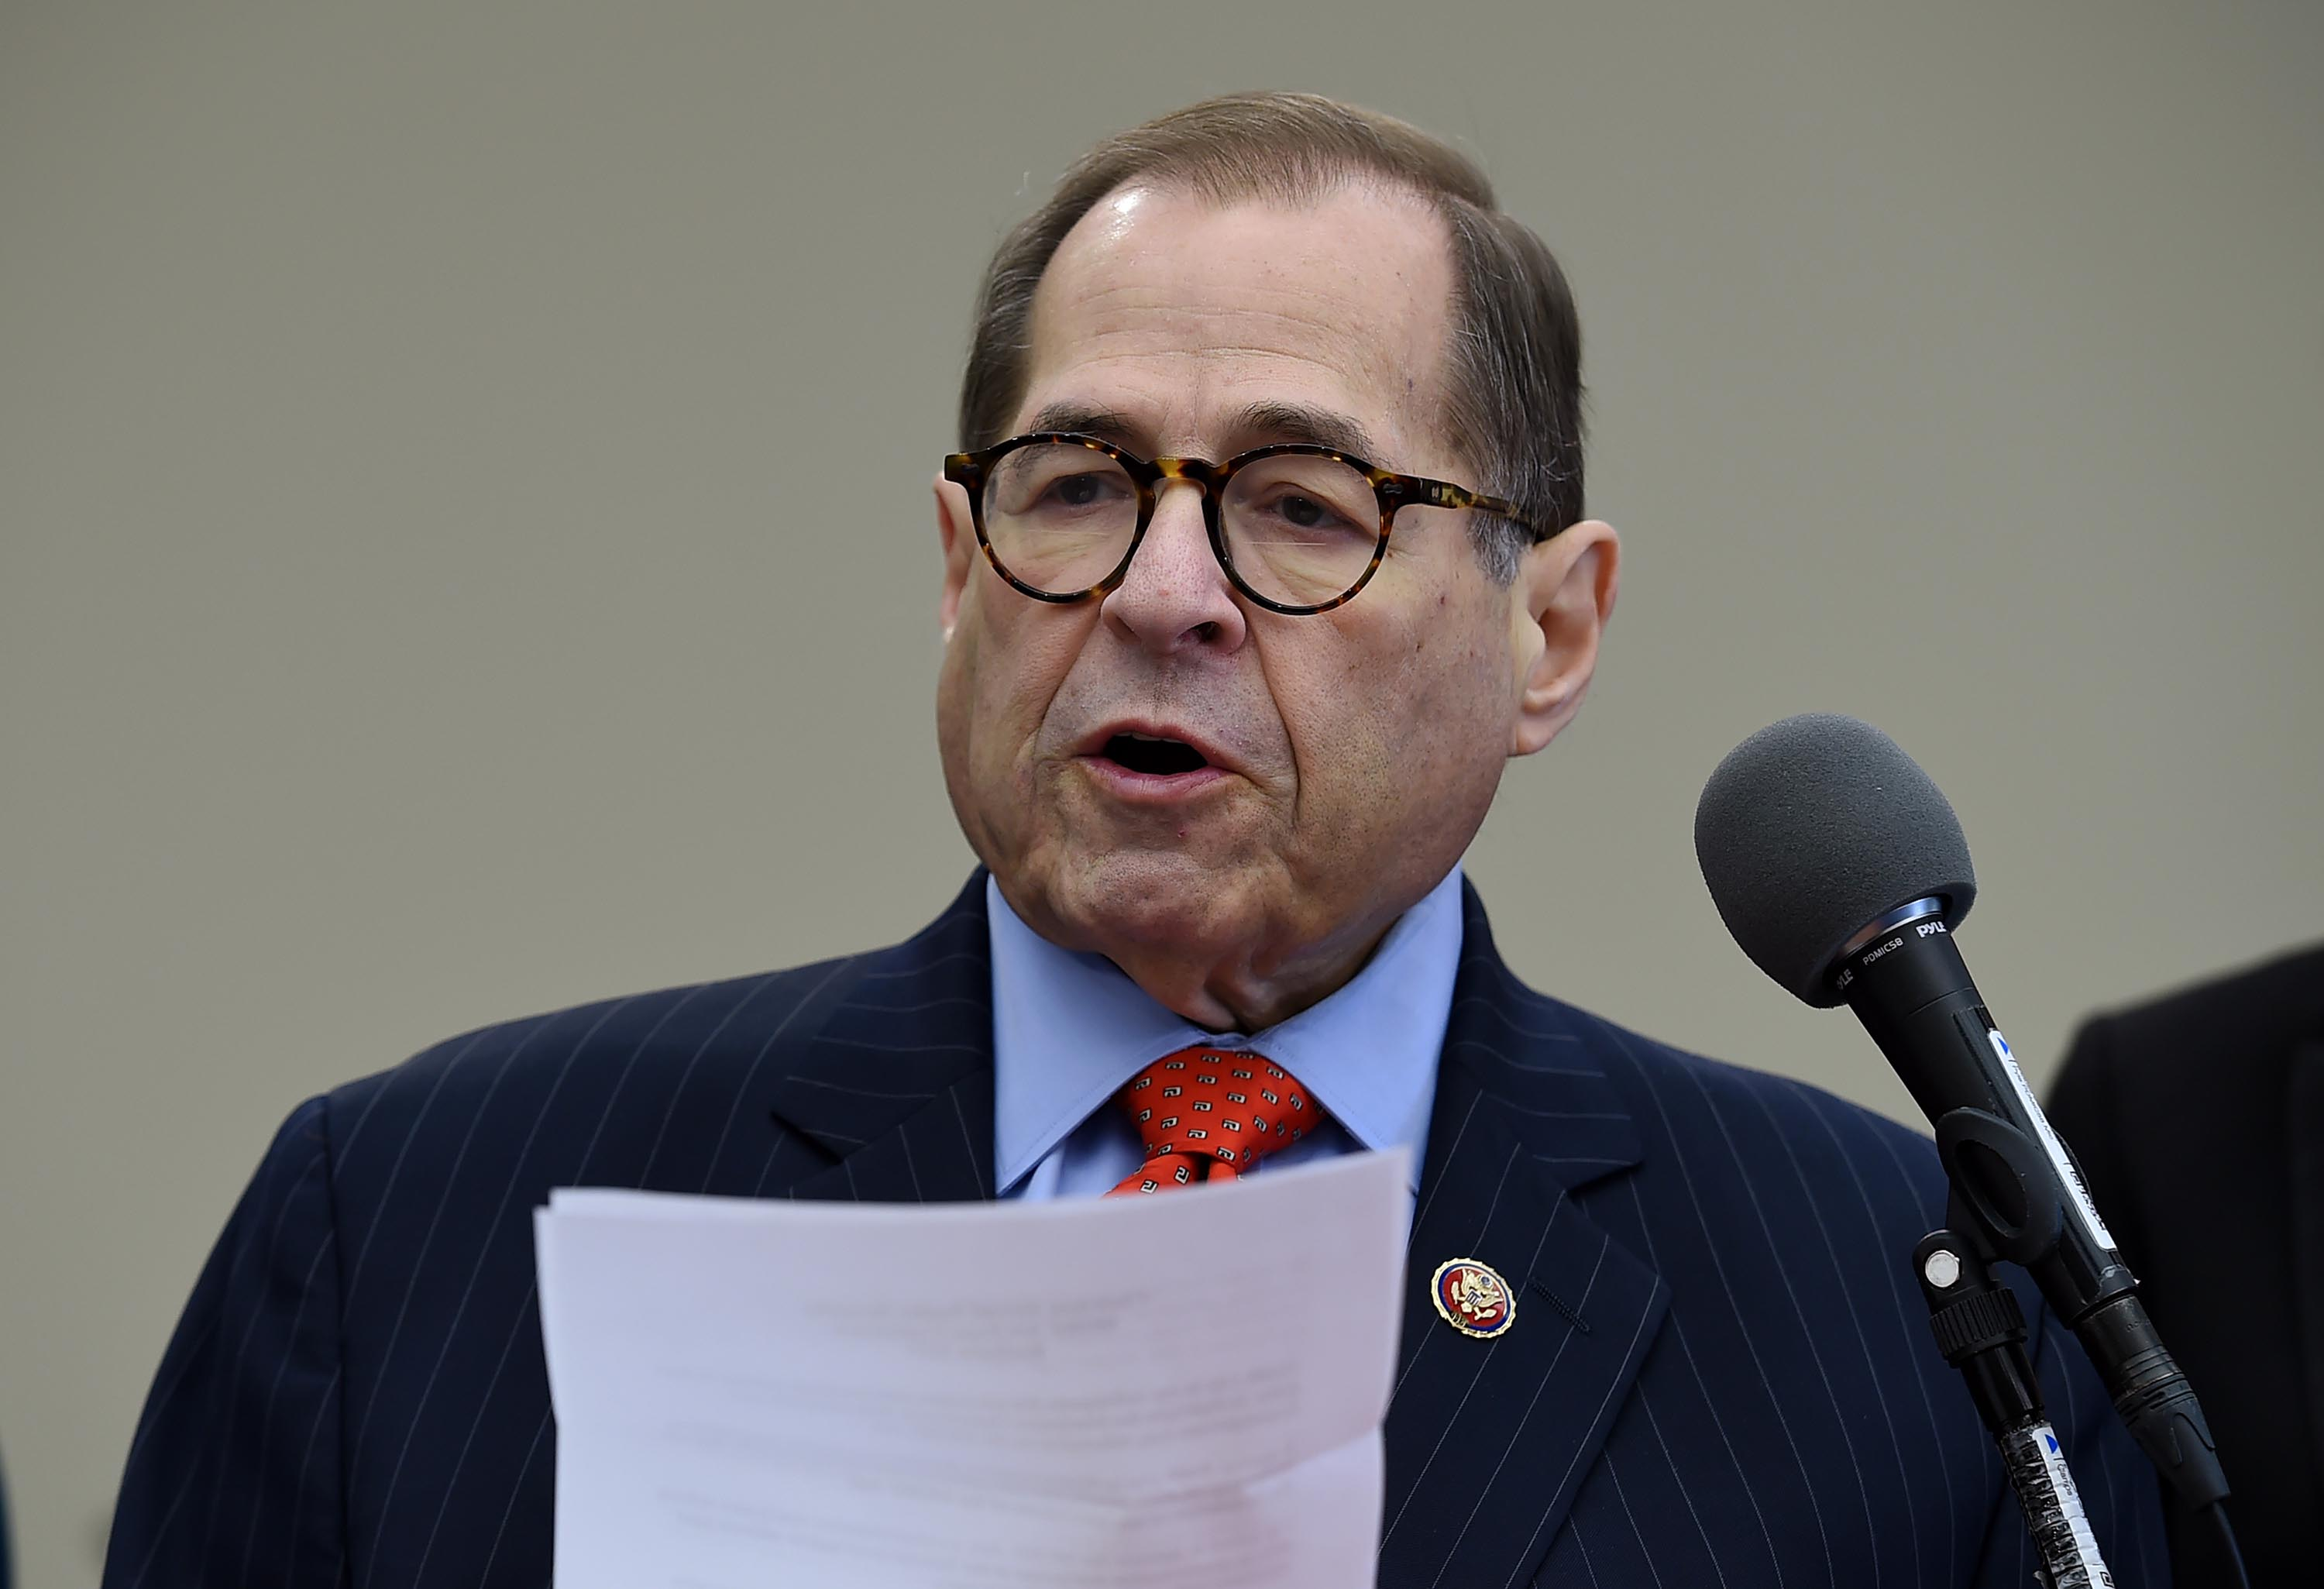 Nadler: Jury would convict Trump in impeachment in 'three minutes flat'